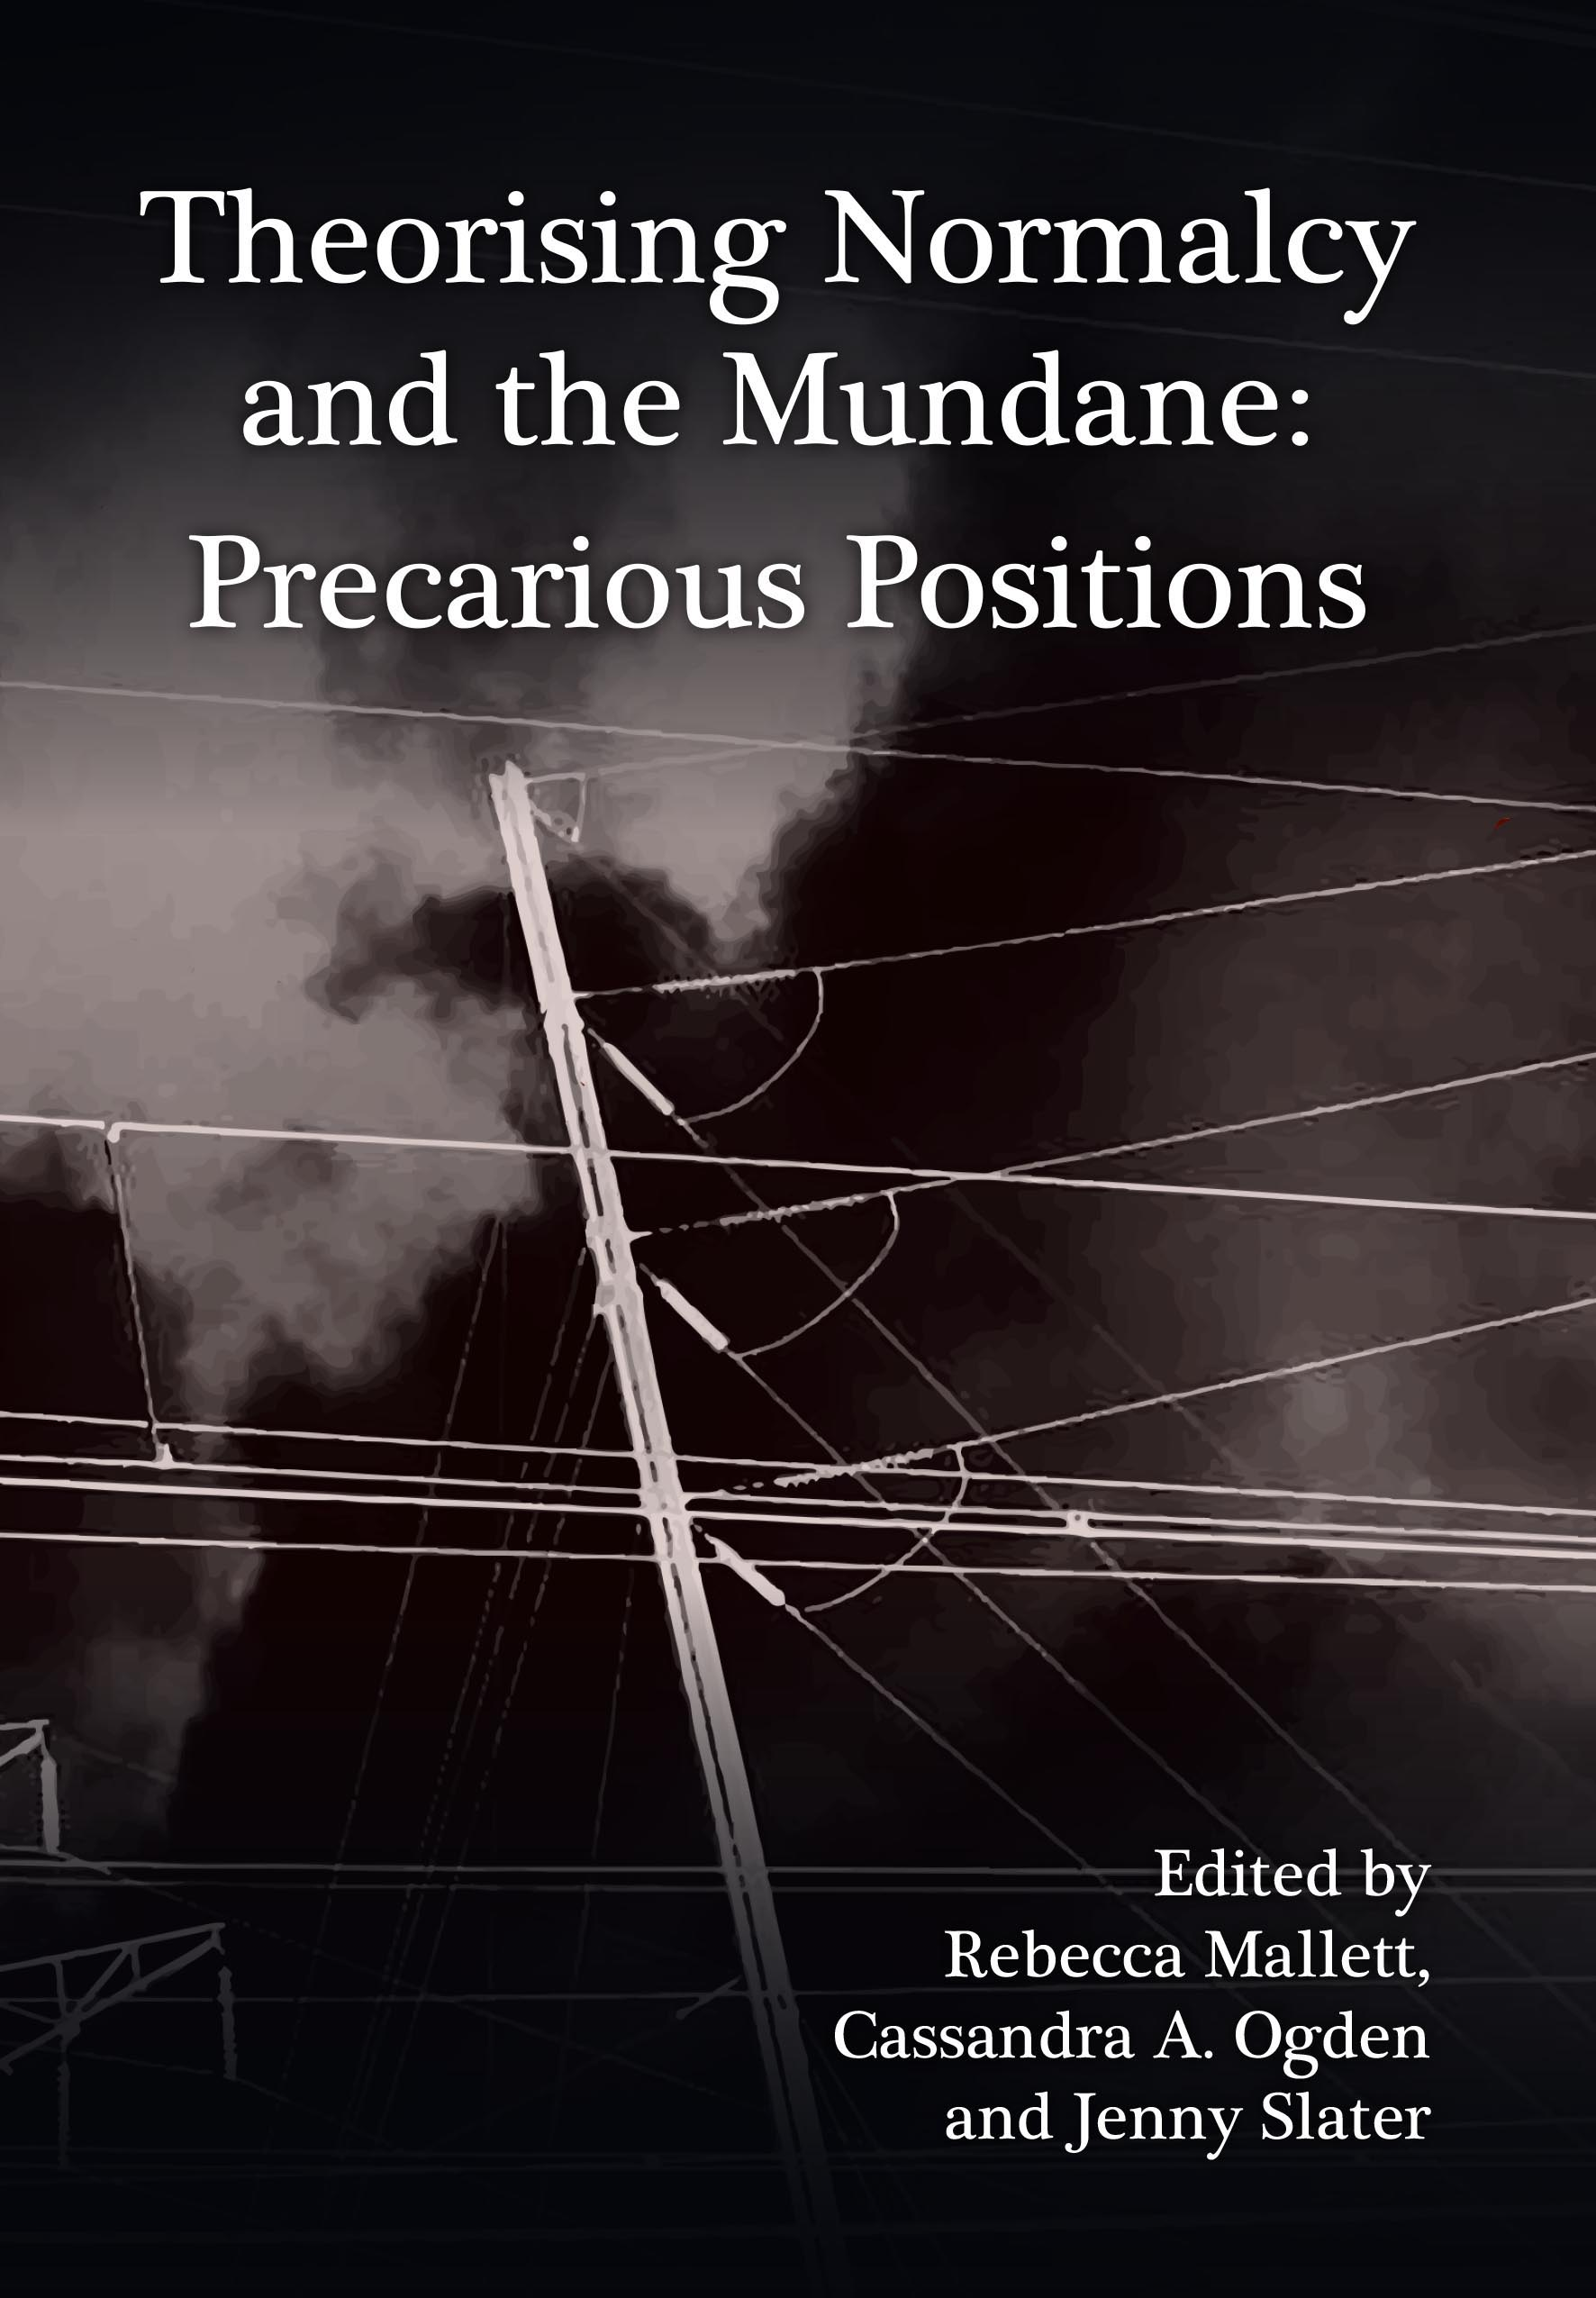 Theorising Normalcy and the Mundane: Precarious Positions